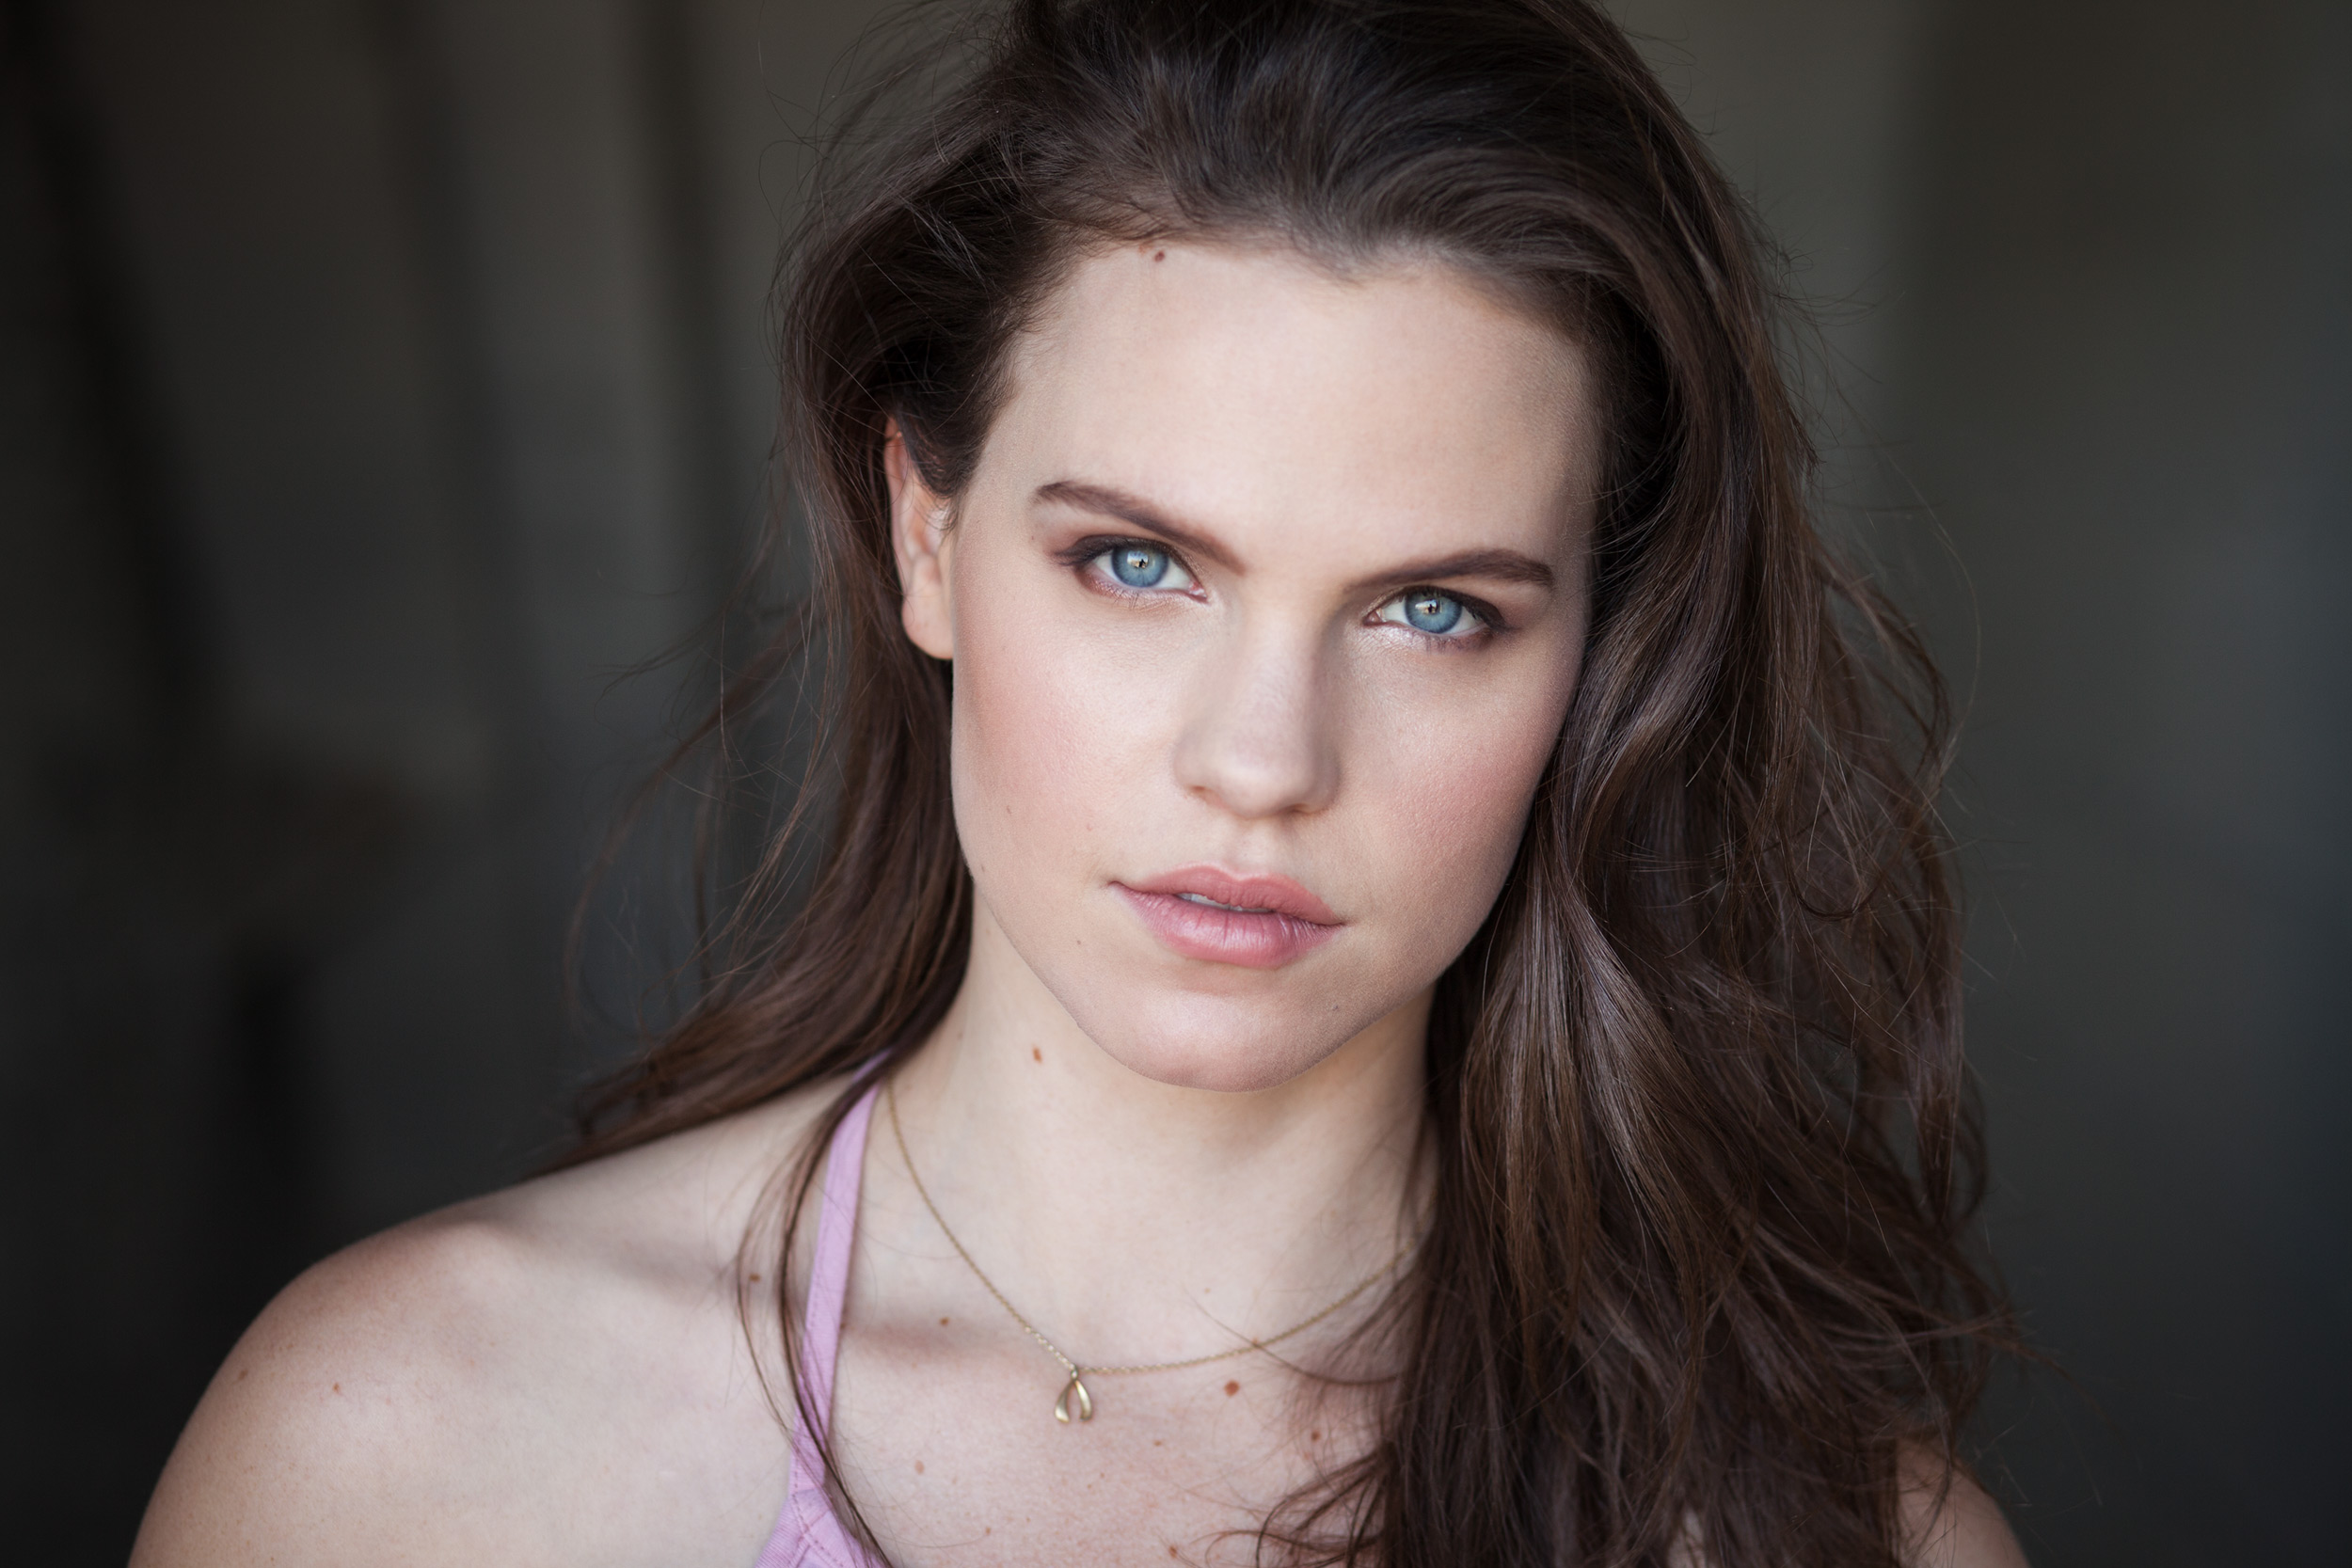 Kat_Solko_actress_headshot_model_blue_eyes.jpg